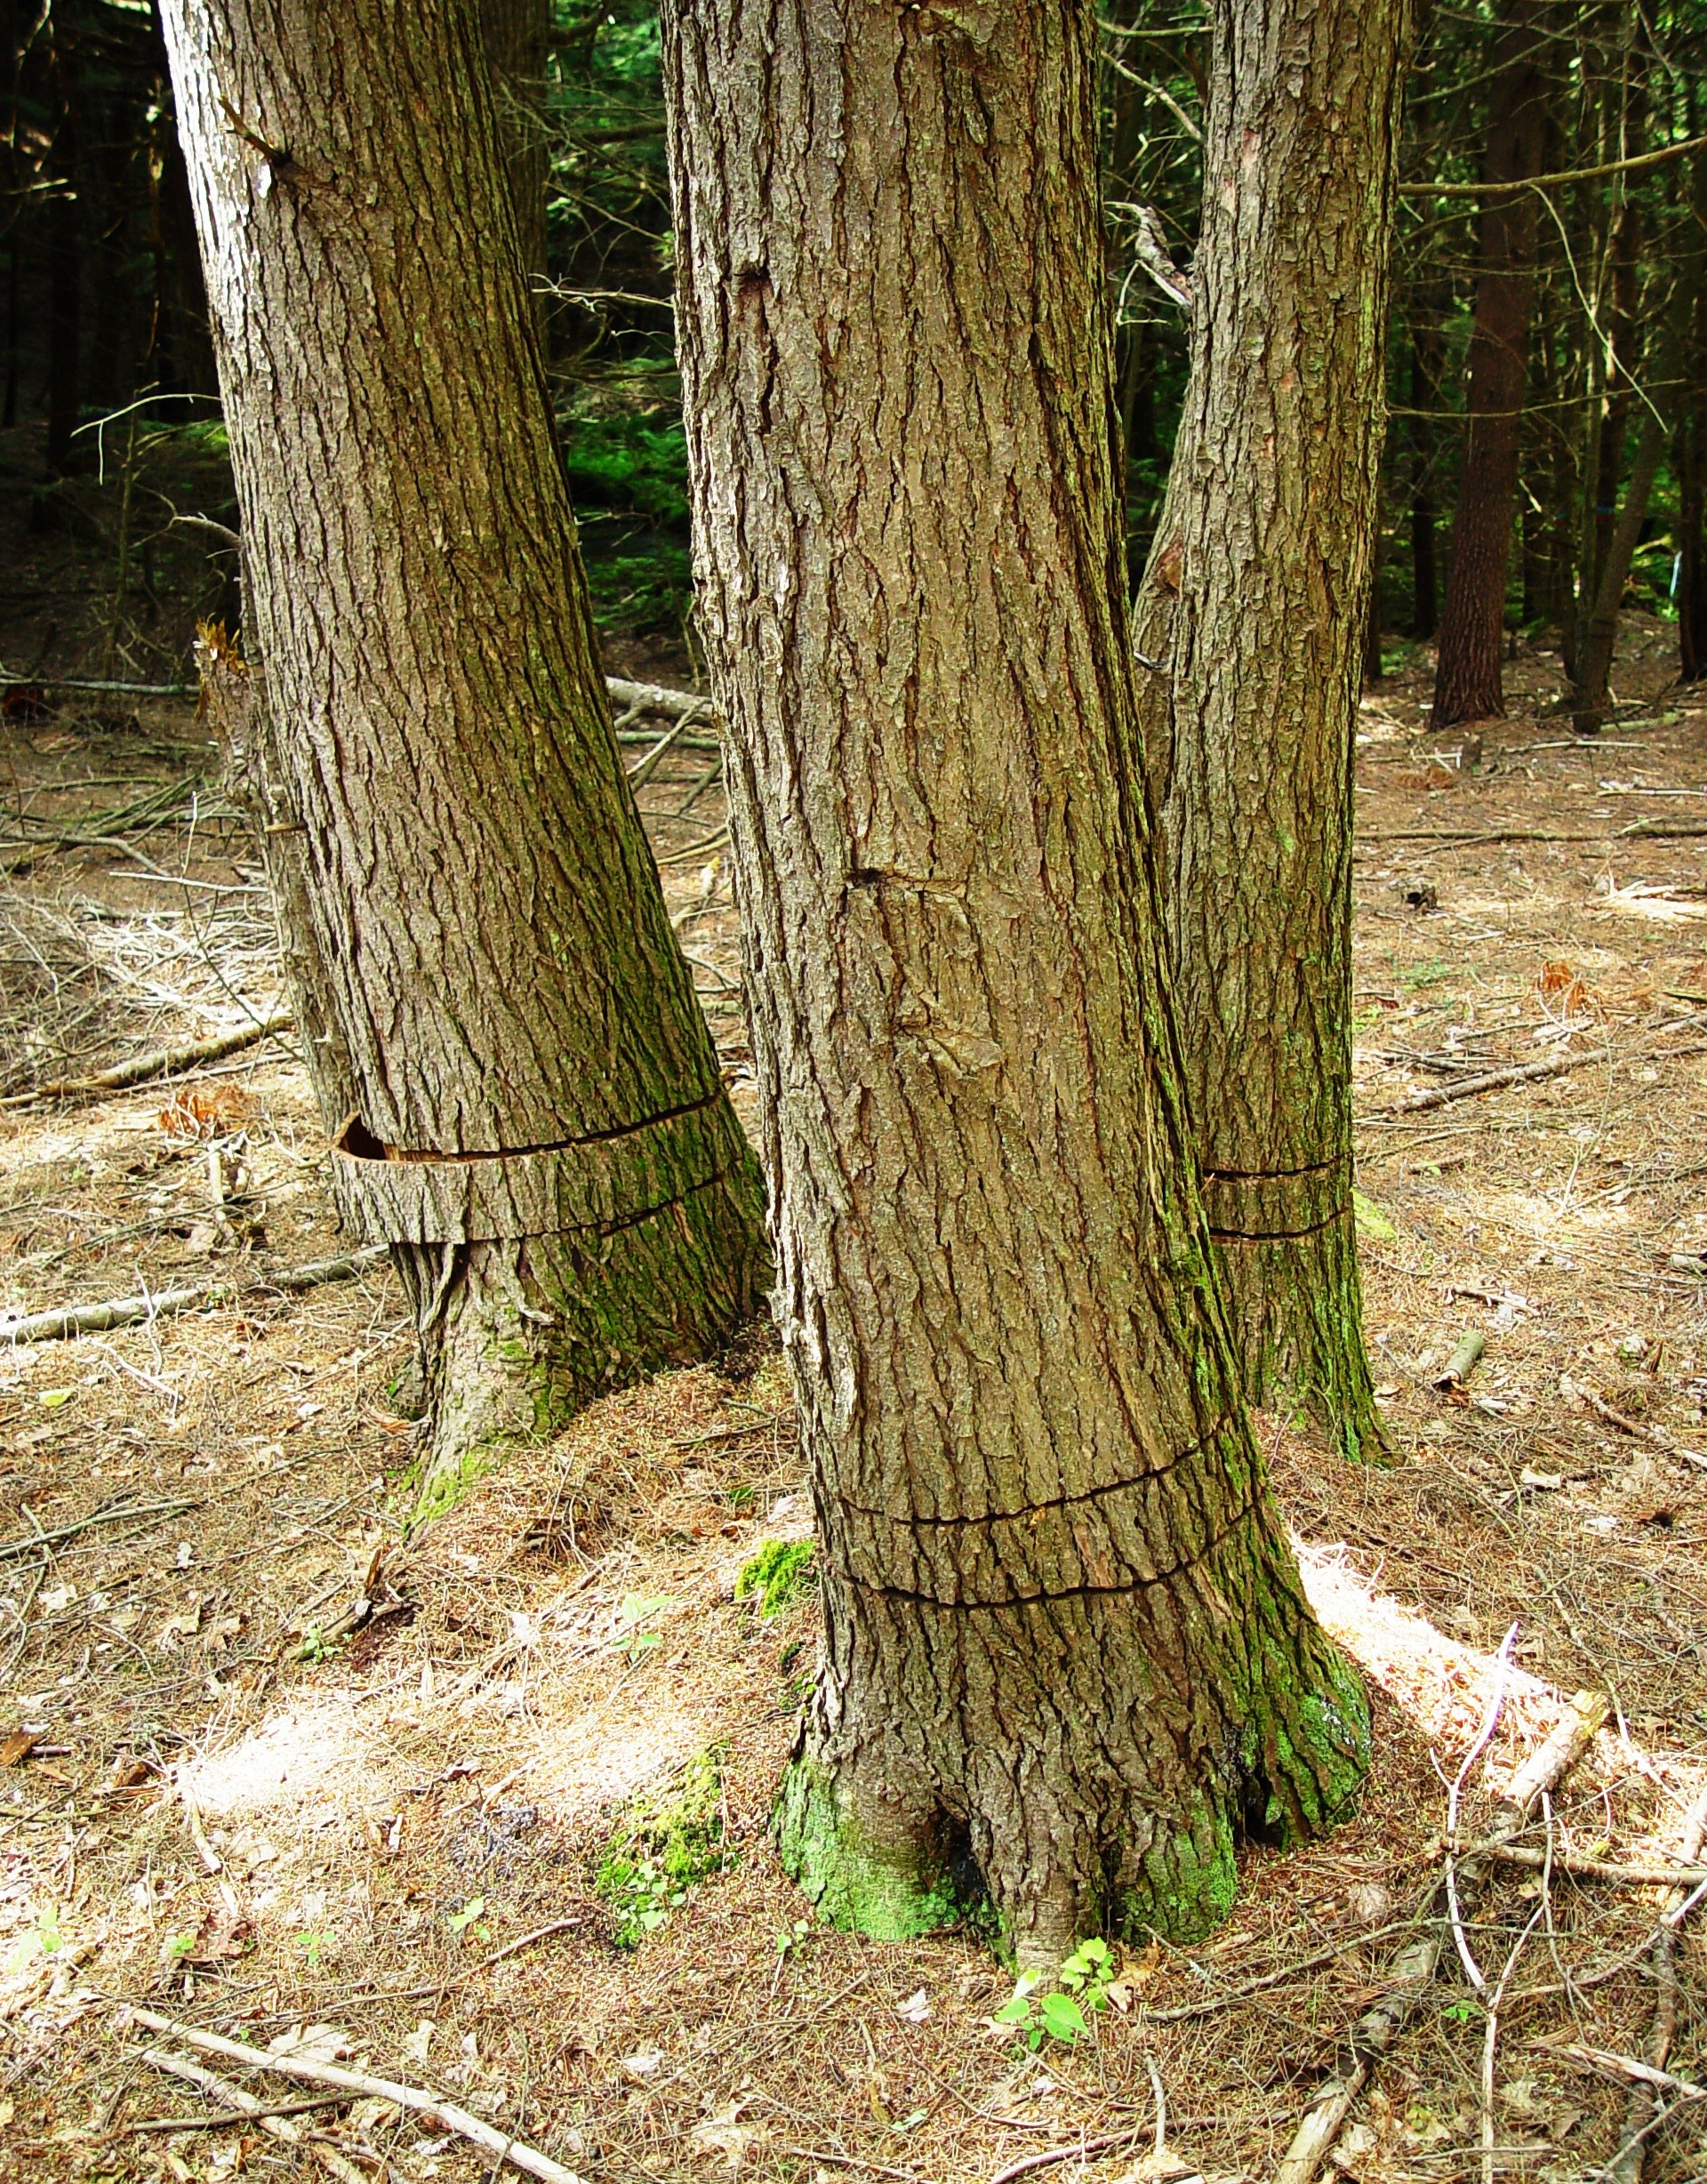 Girdled Hemlock